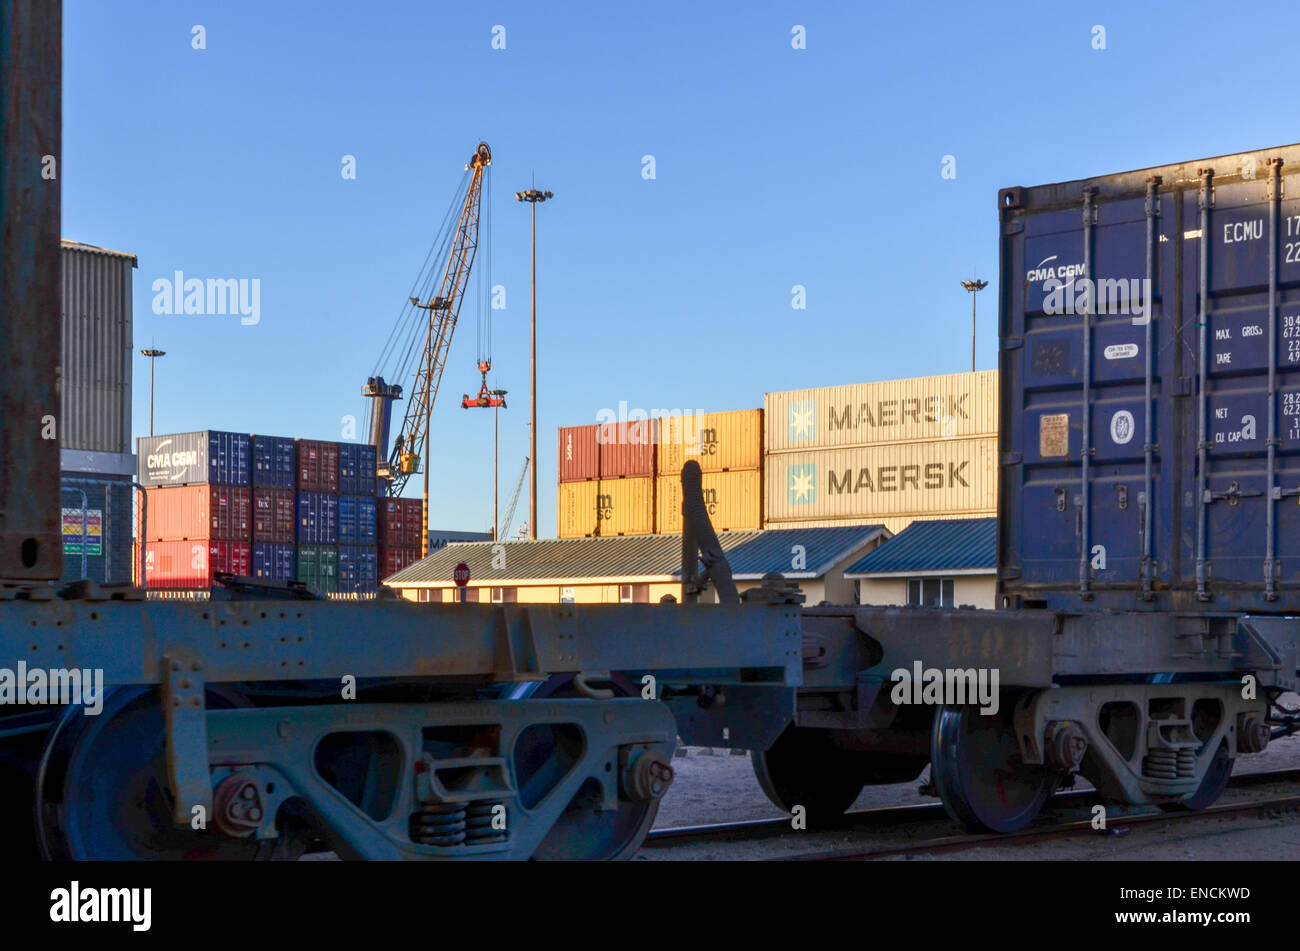 Maersk and MSC containers at the container terminal of the port of Walvis Bay, Namibia, behind a freight train - Stock Image